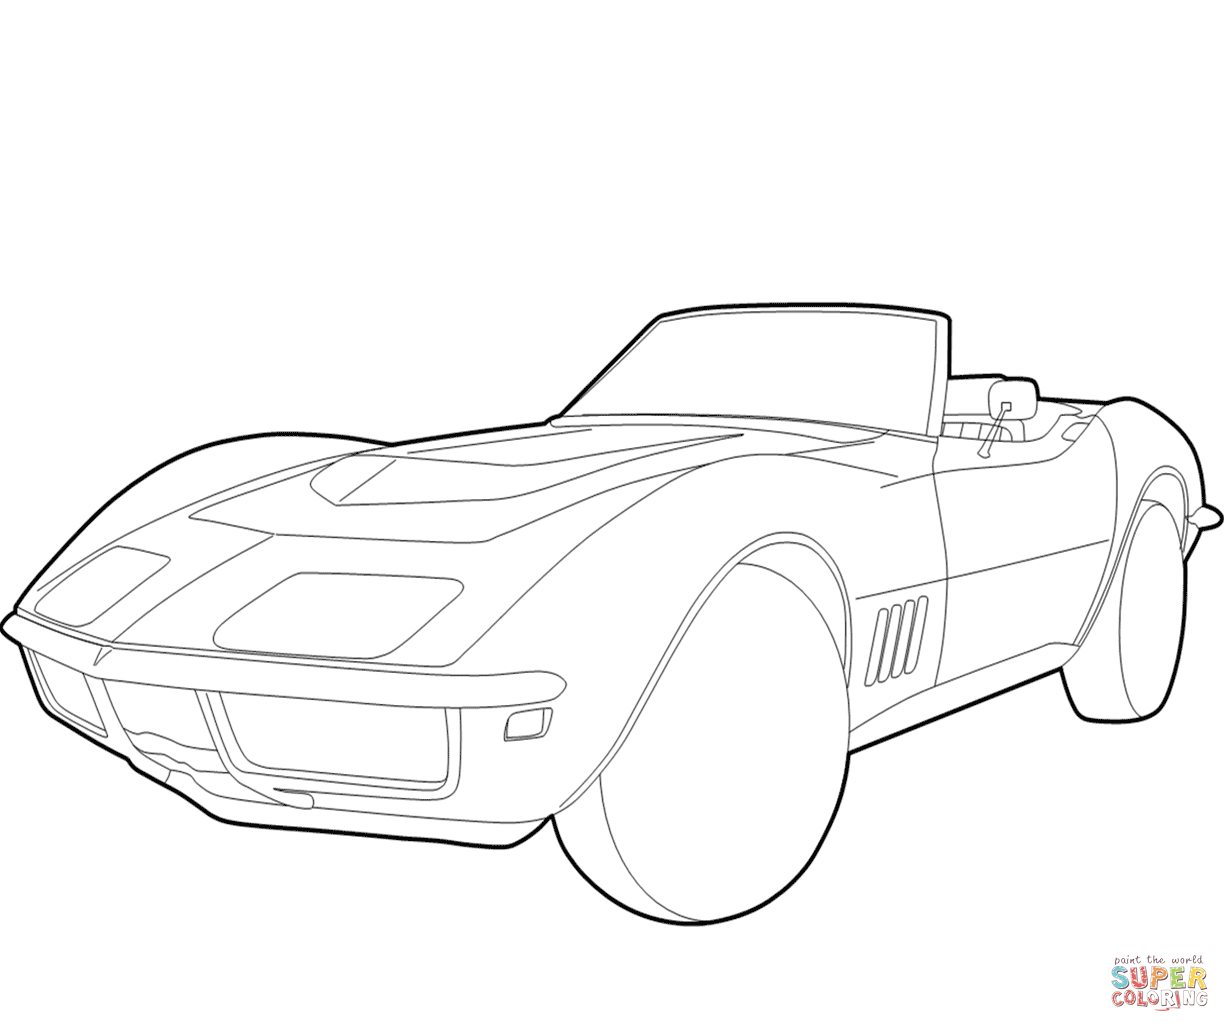 1224x1032 Camaro Coloring Pages Printable Of Chevy For Adults Camaros Trucks